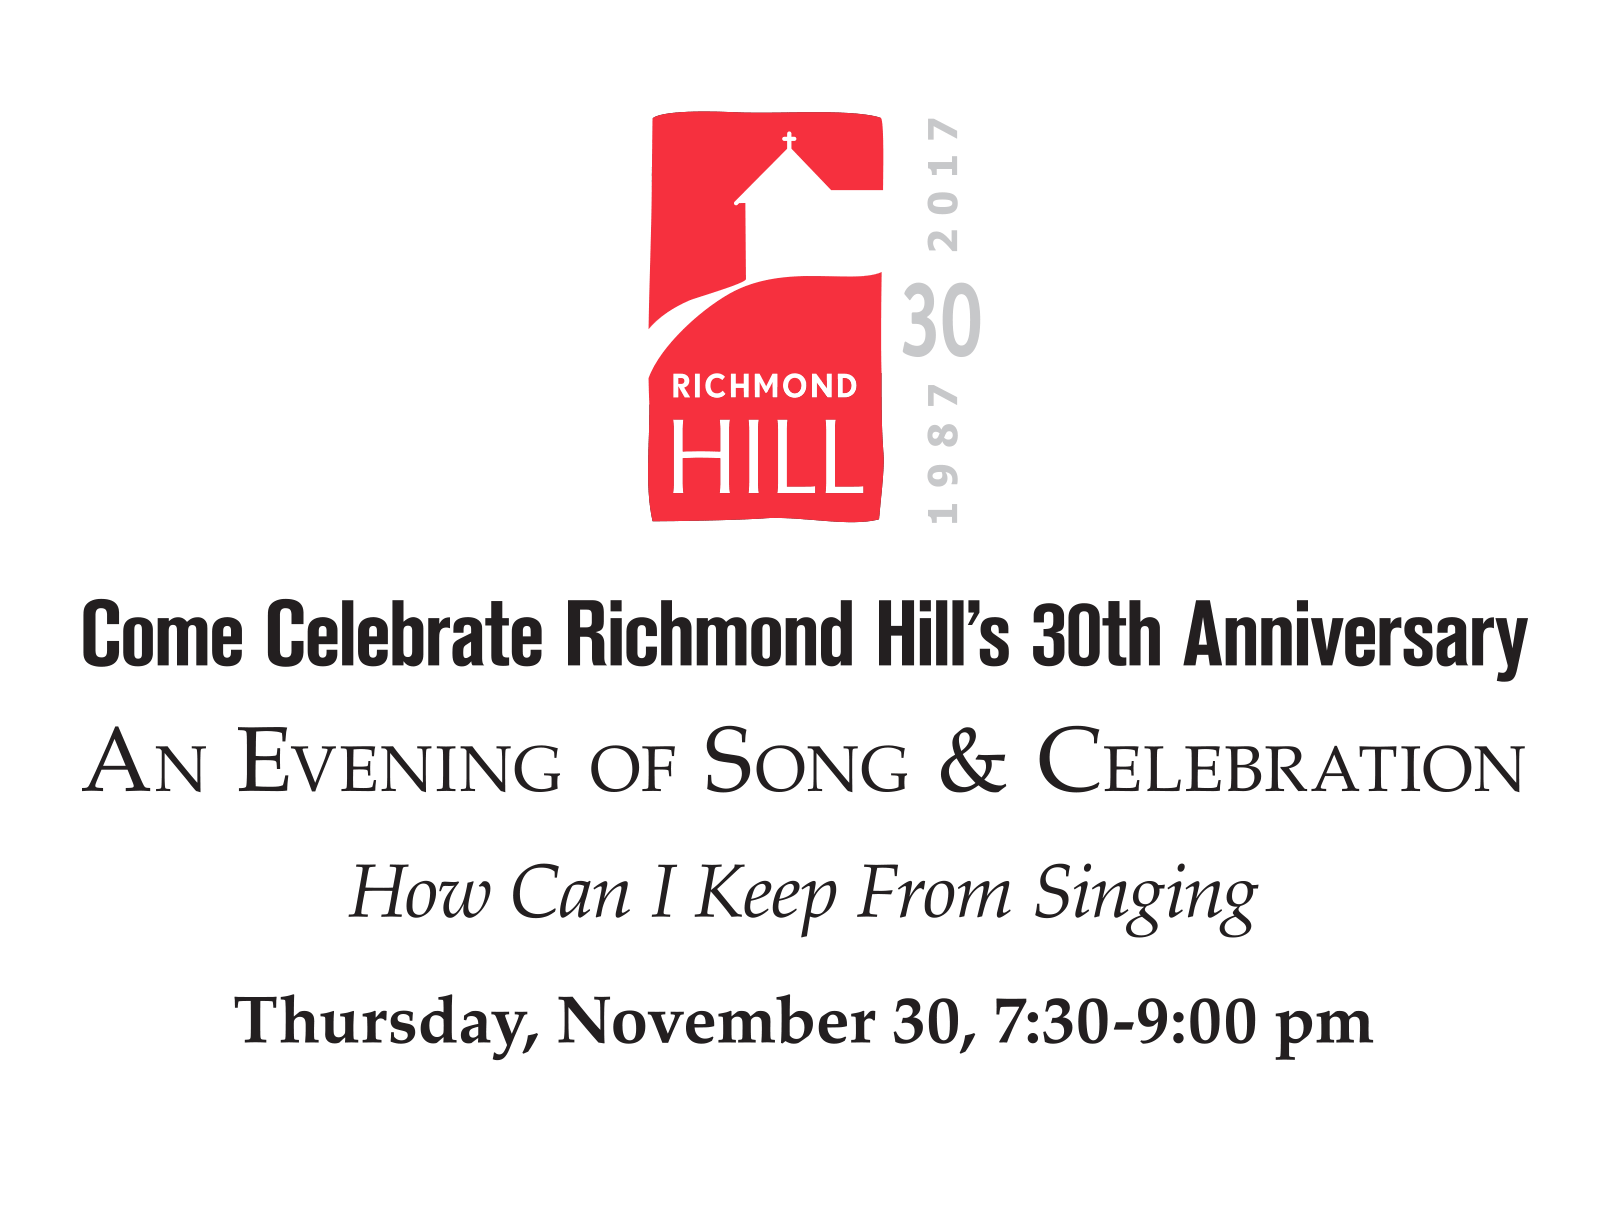 Richmond Hill is turning 30!